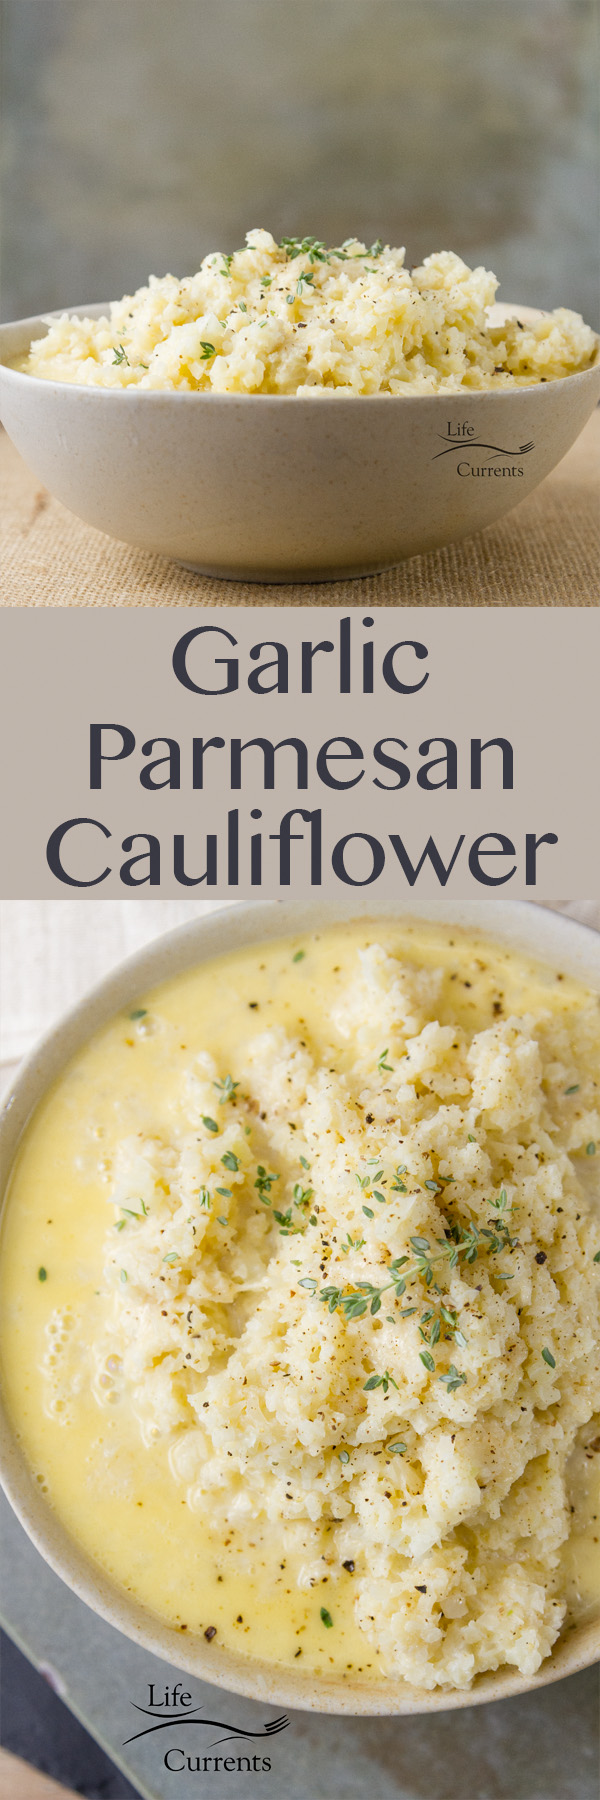 Garlic Parmesan Cauliflower - Healthy cauliflower in a light garlic Parmesan cream sauce - the perfect side dish for any occasion, a weeknight meal, a family holiday meal